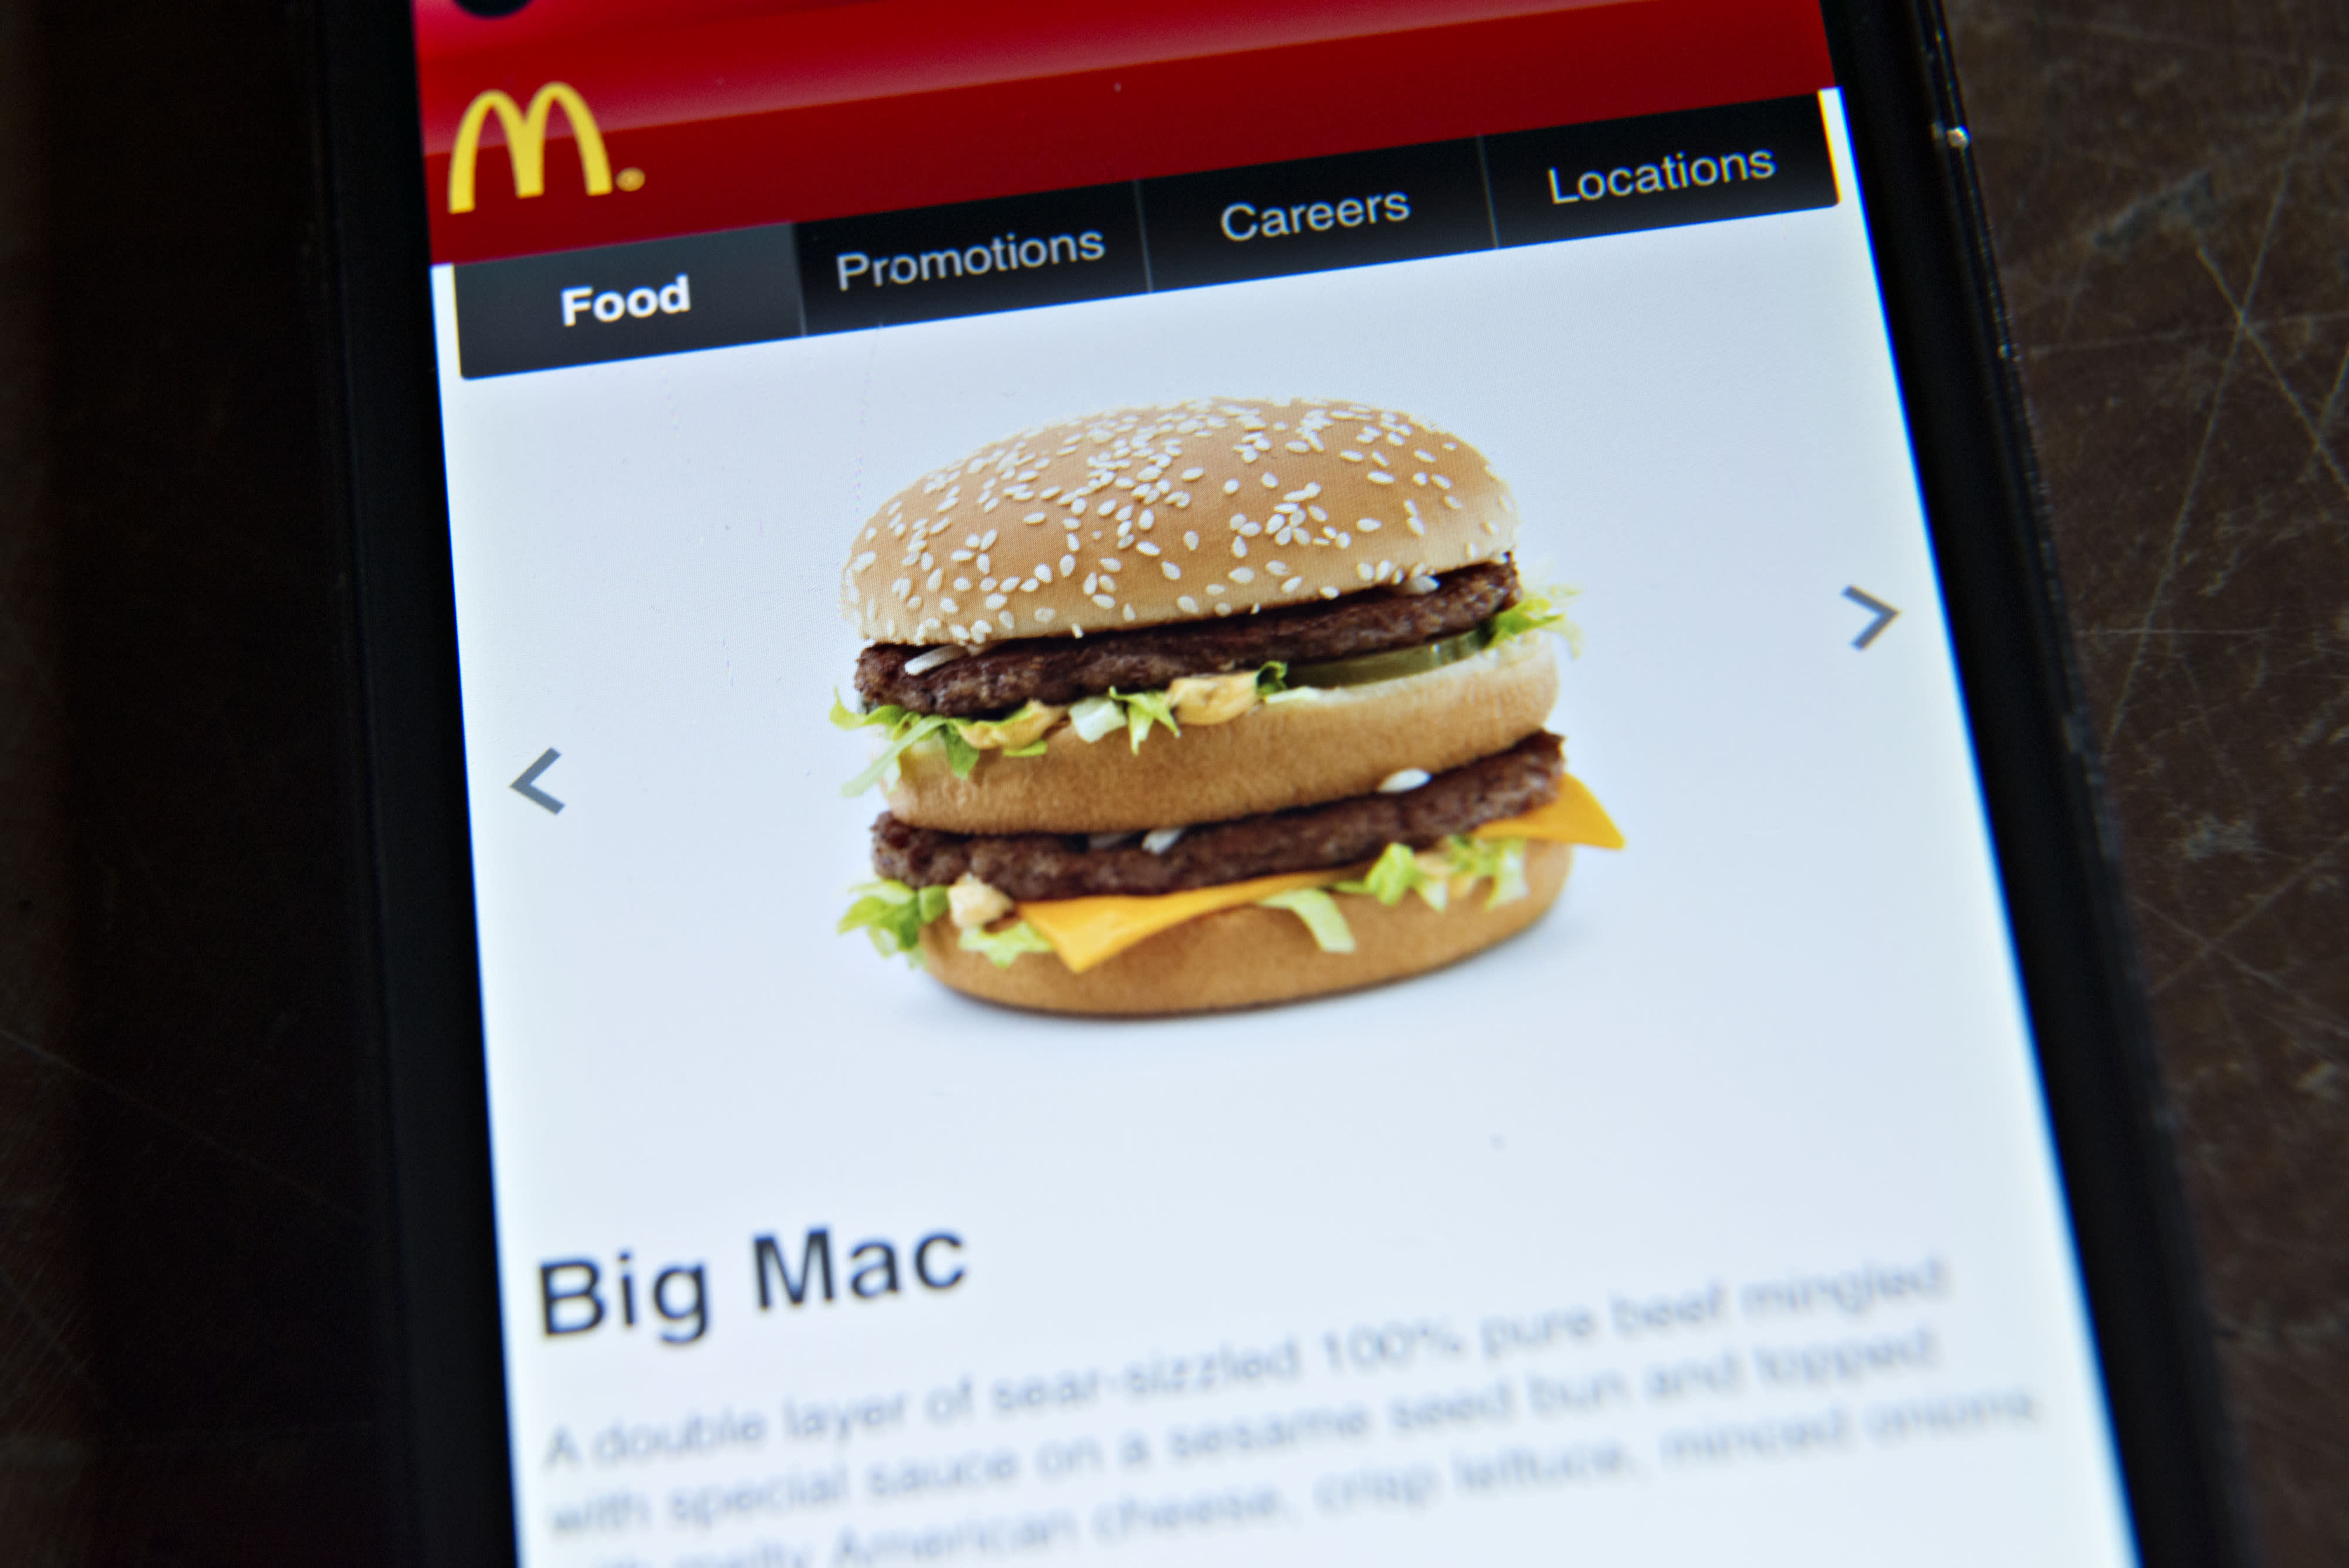 Buy Mcdonalds Shares Because Its Mobile Deal App Usage Is Surging